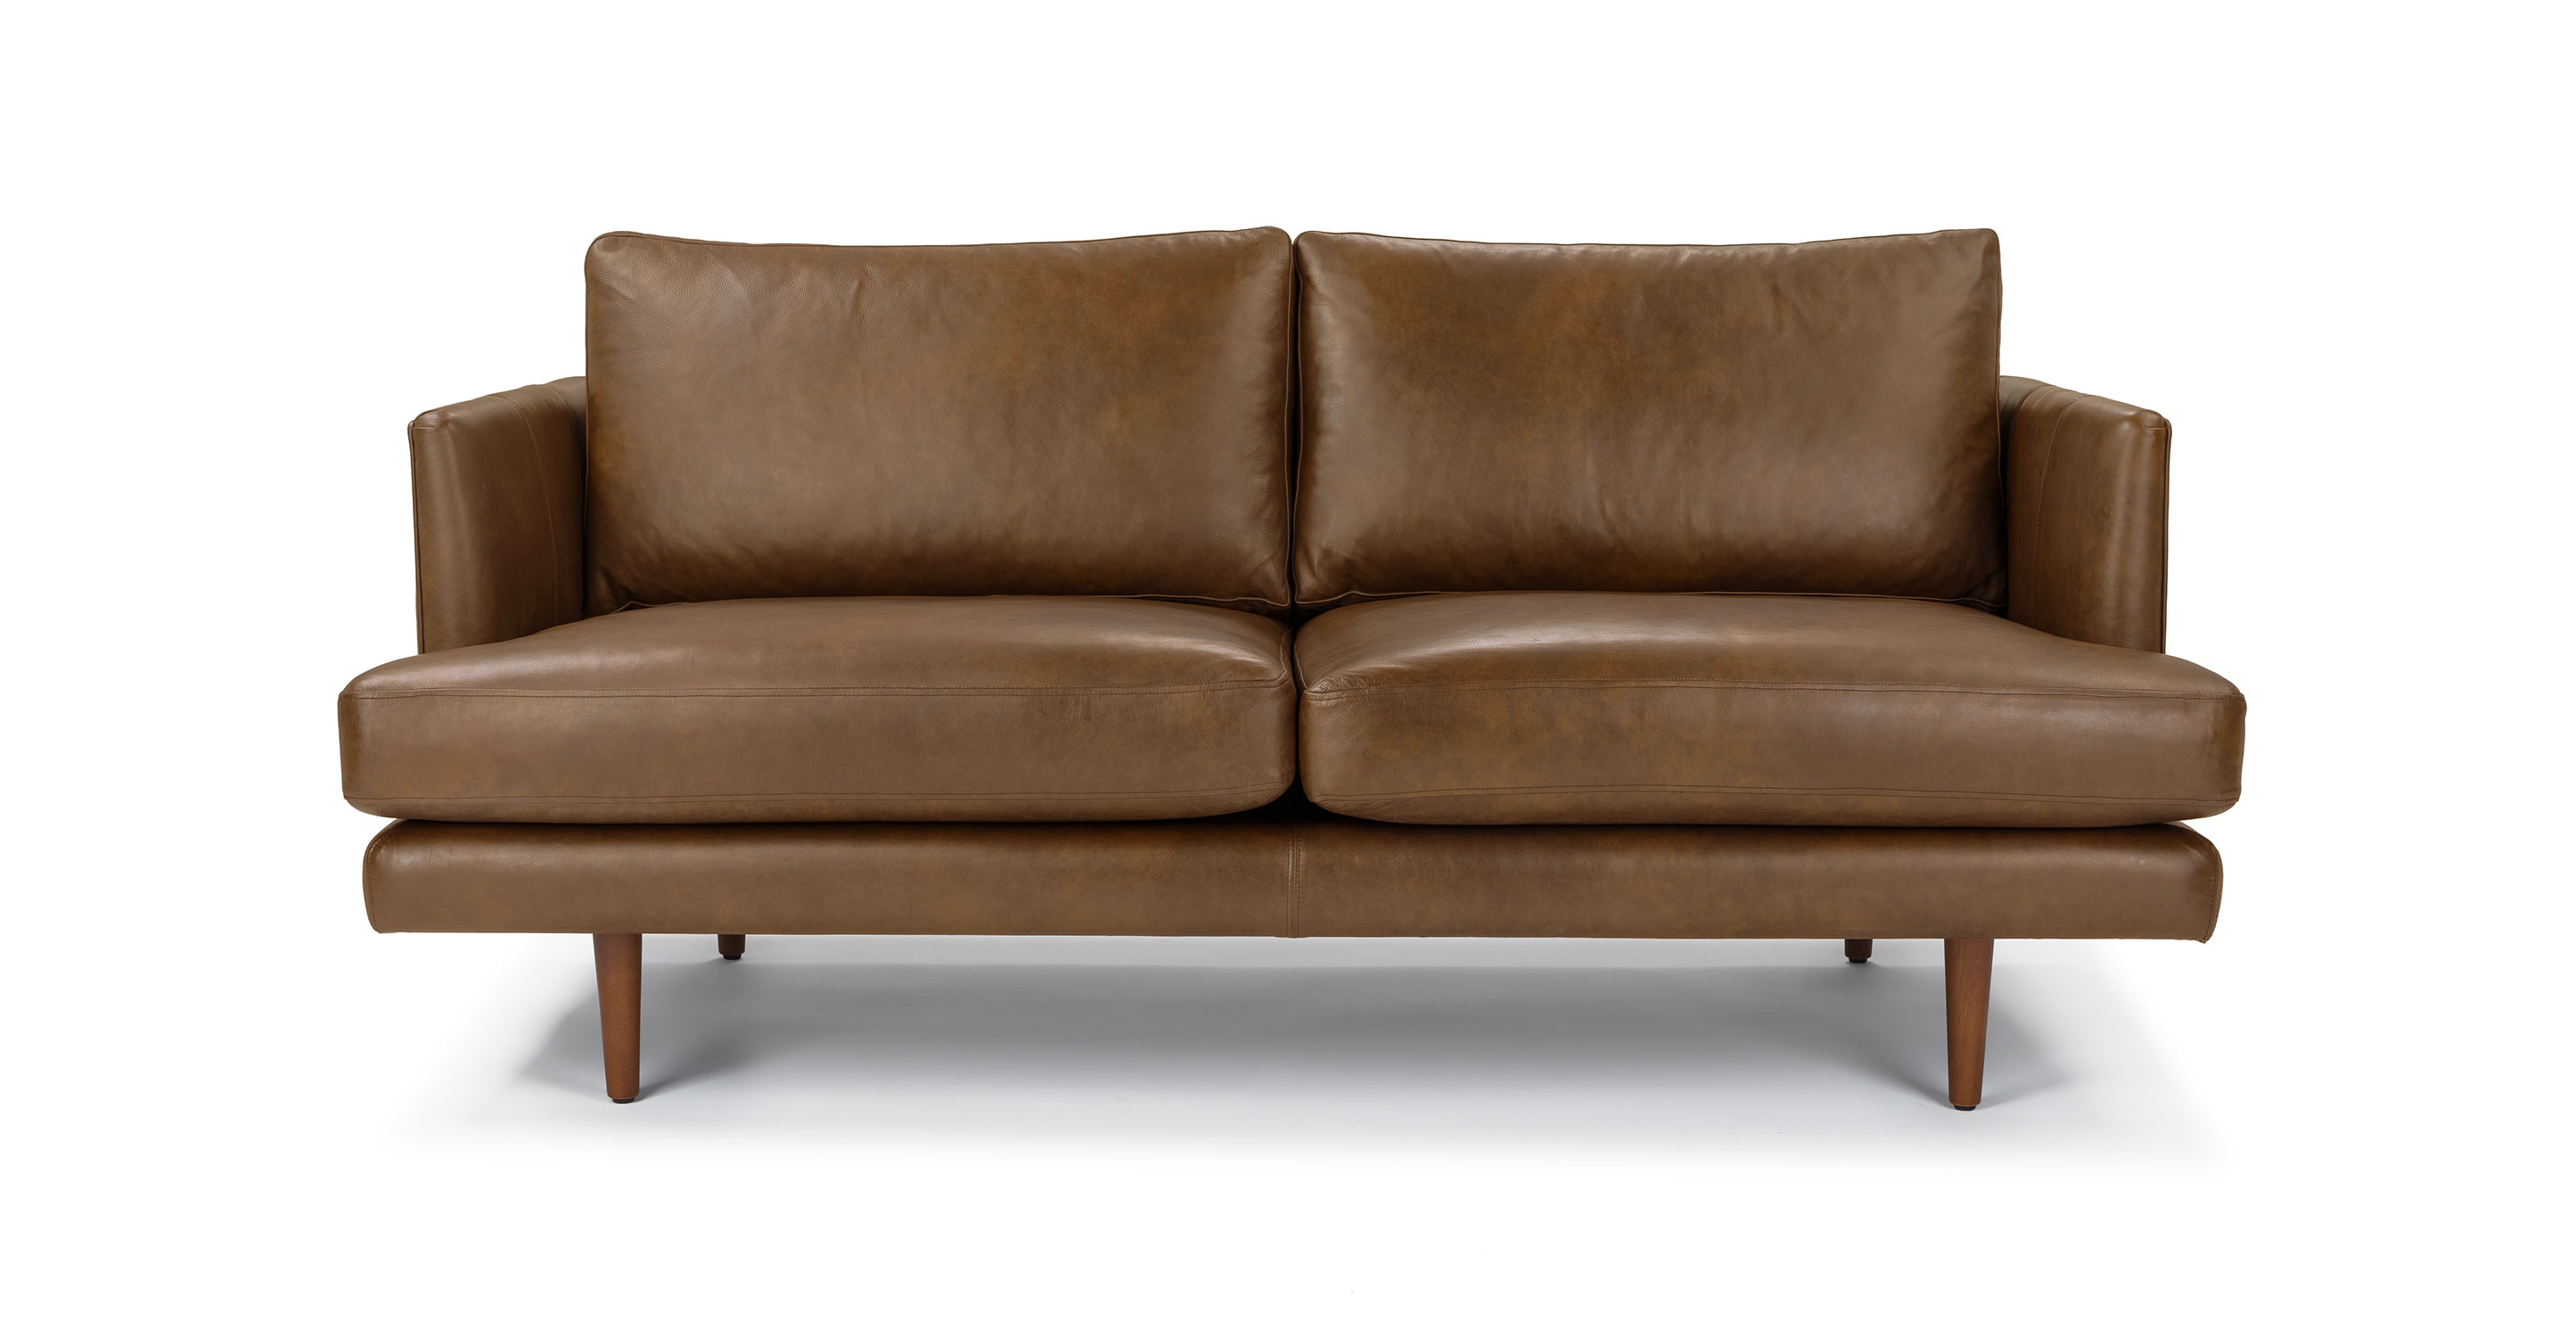 Vintage Sofa Lounge Winston Salem Tan Leather Loveseat Solid Wood Legs Article Burrard Modern Furniture